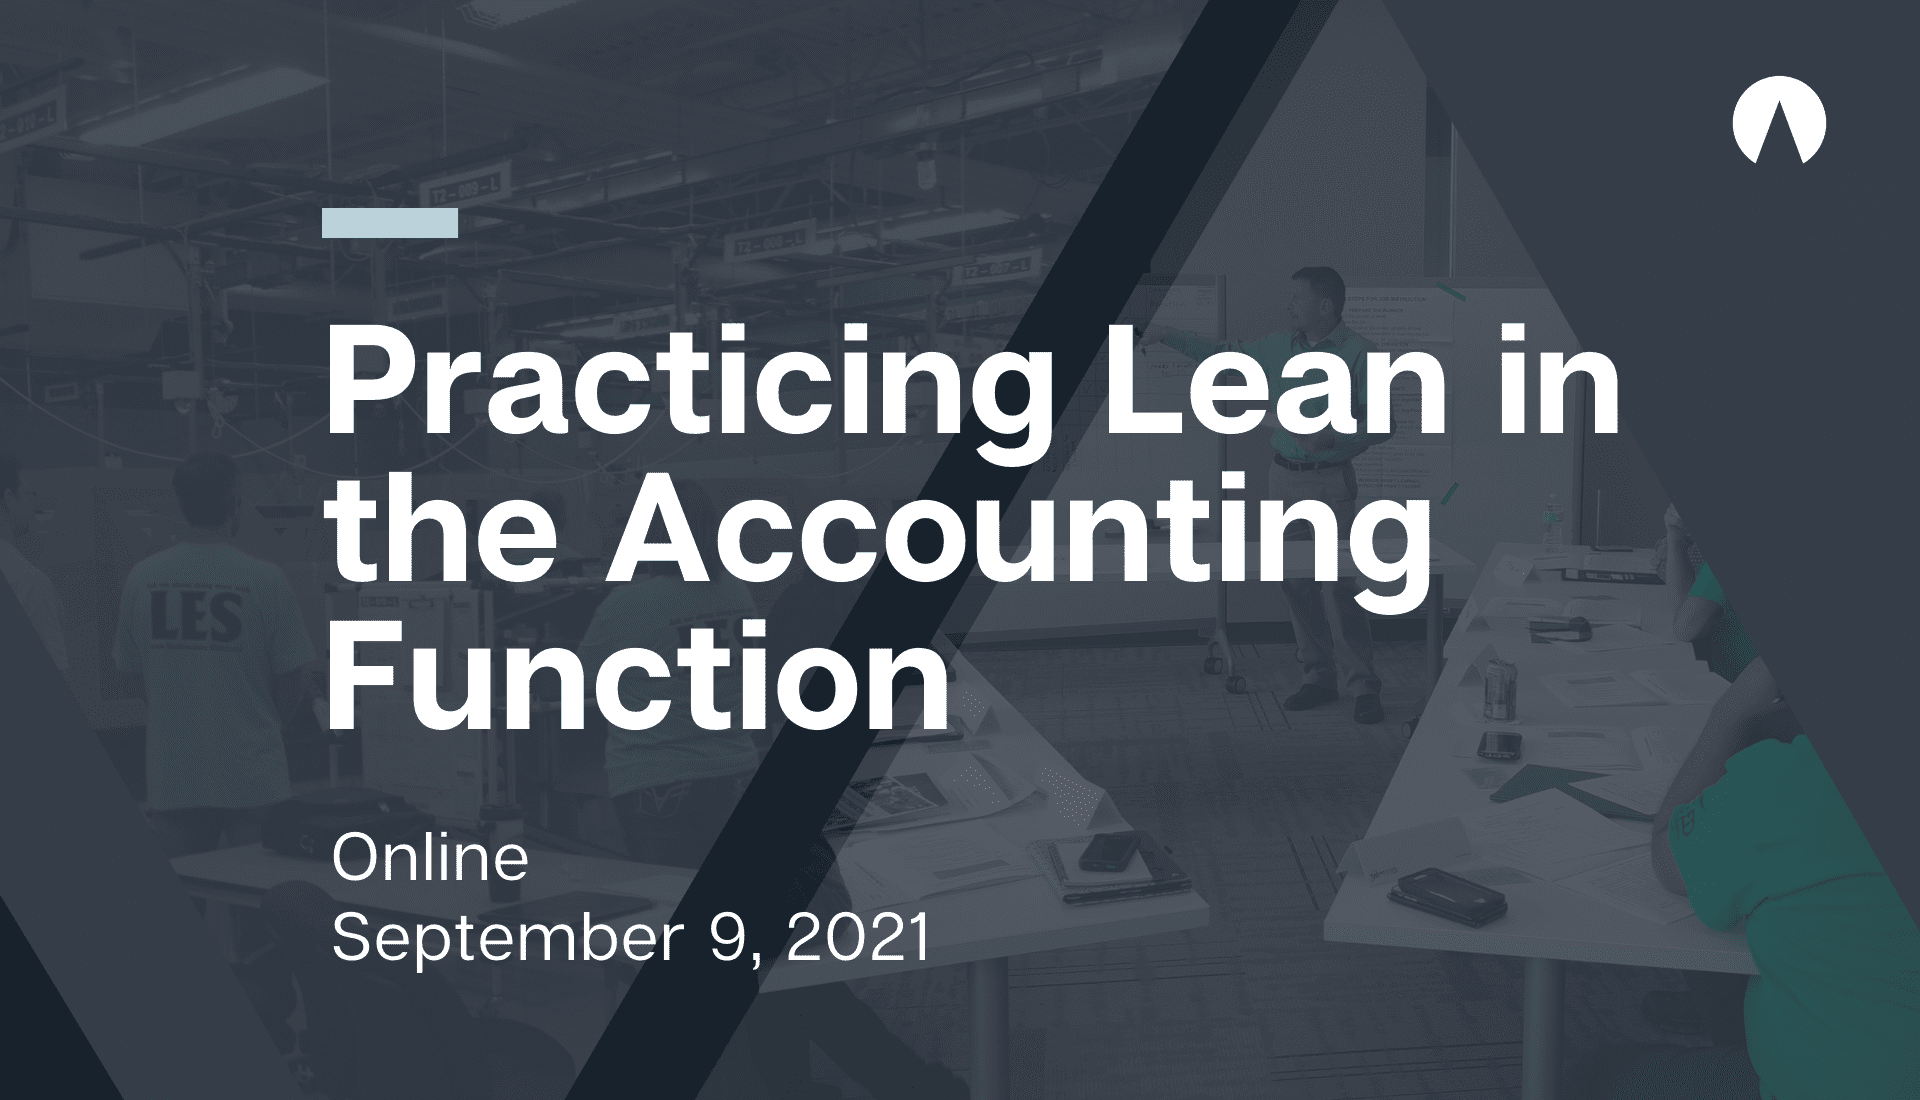 Practicing Lean in the Accounting Function